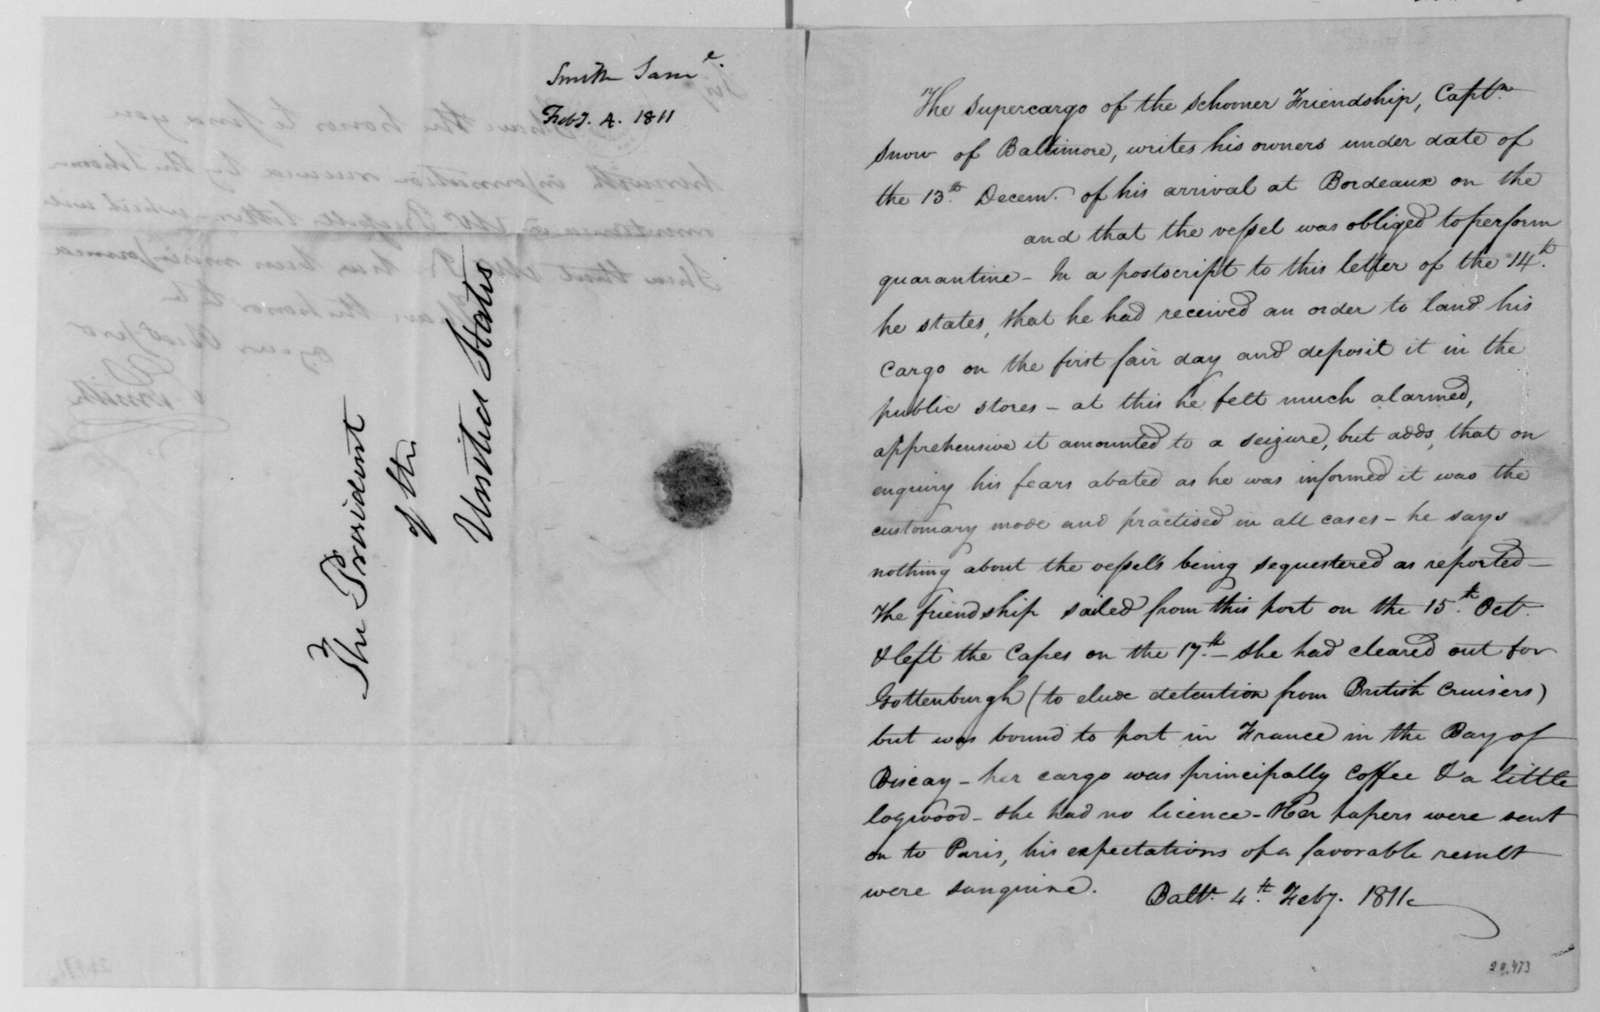 Samuel Smith to James Madison, February 4, 1811. With Note on schooner Friendship.